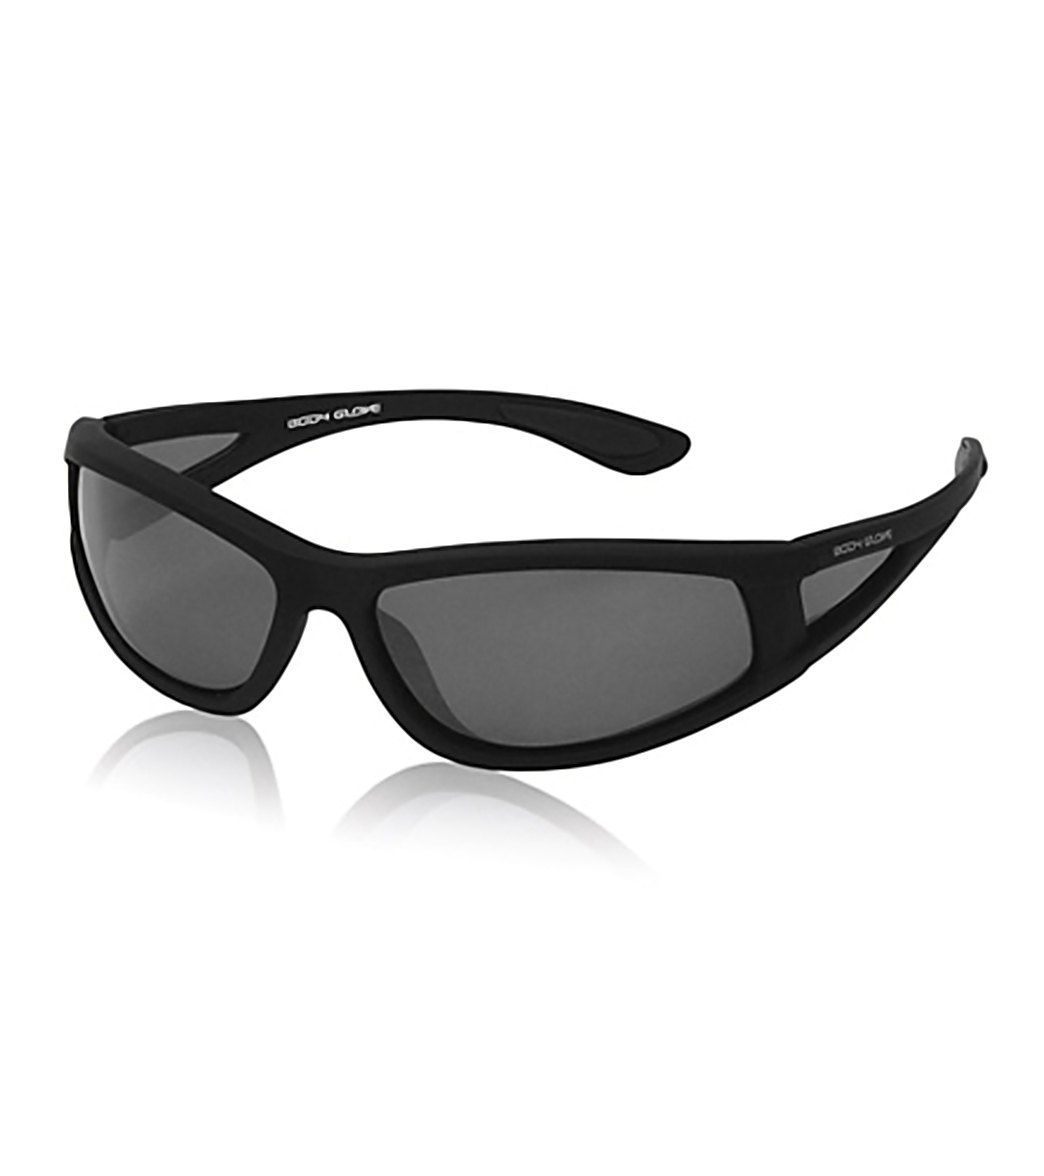 b69c7aaa14 Body Glove FL1-A Polarized Floating Sunglasses at SwimOutlet.com